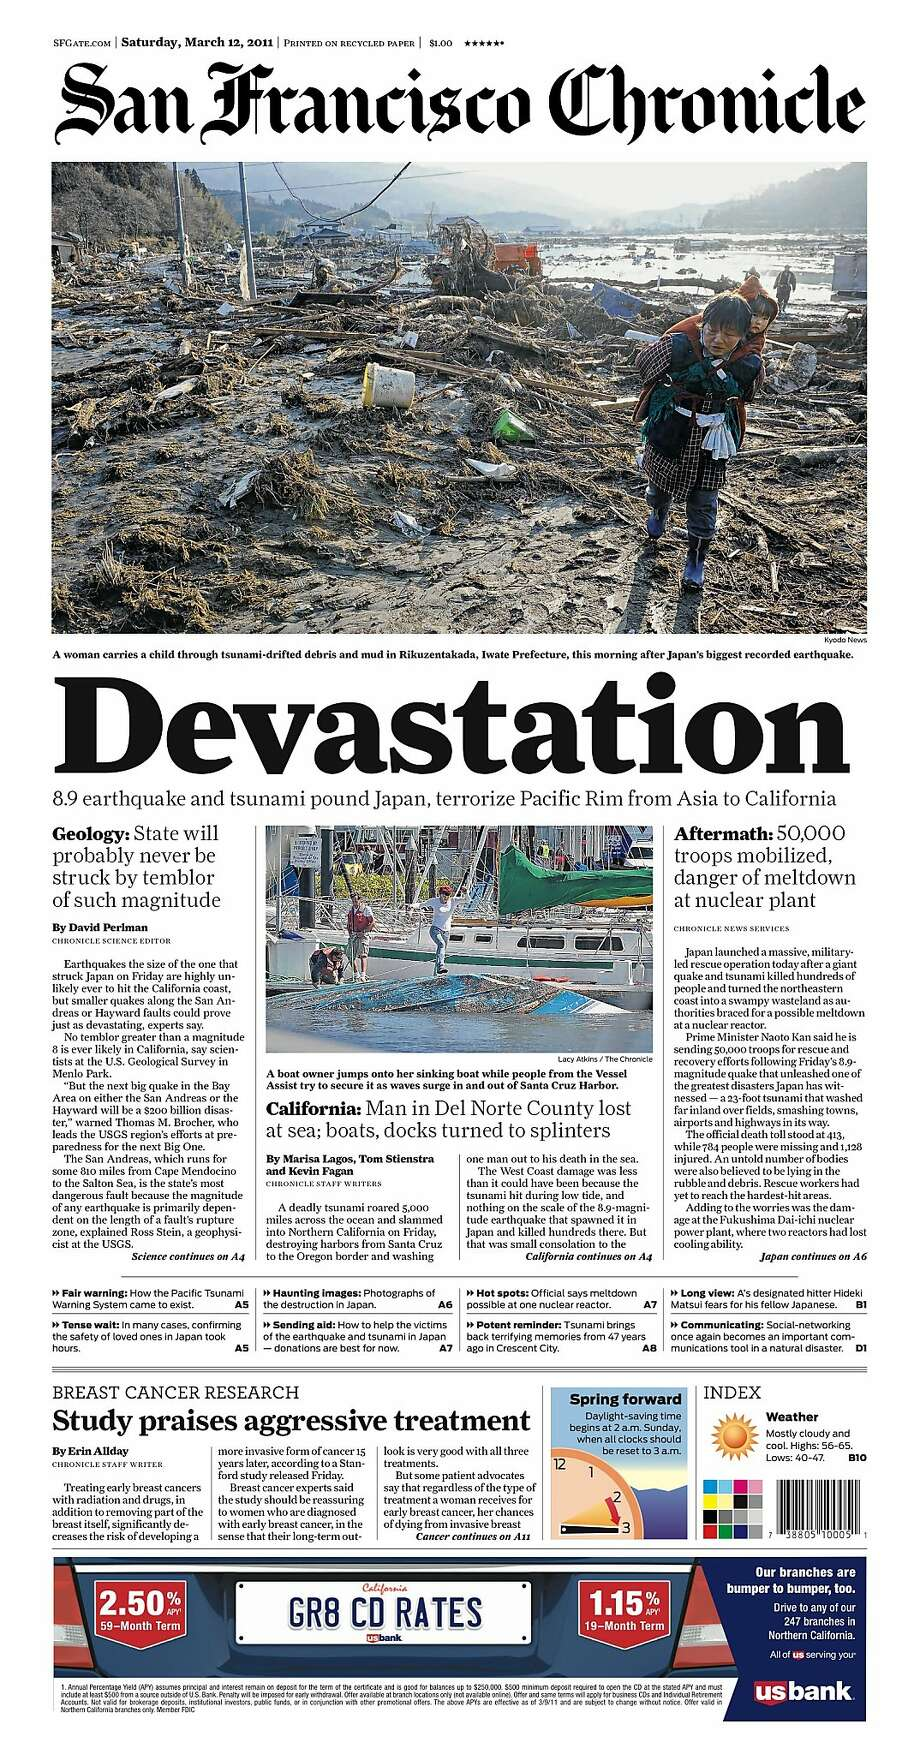 Chronicle Covers When Quake Tsunami Brought Devastation